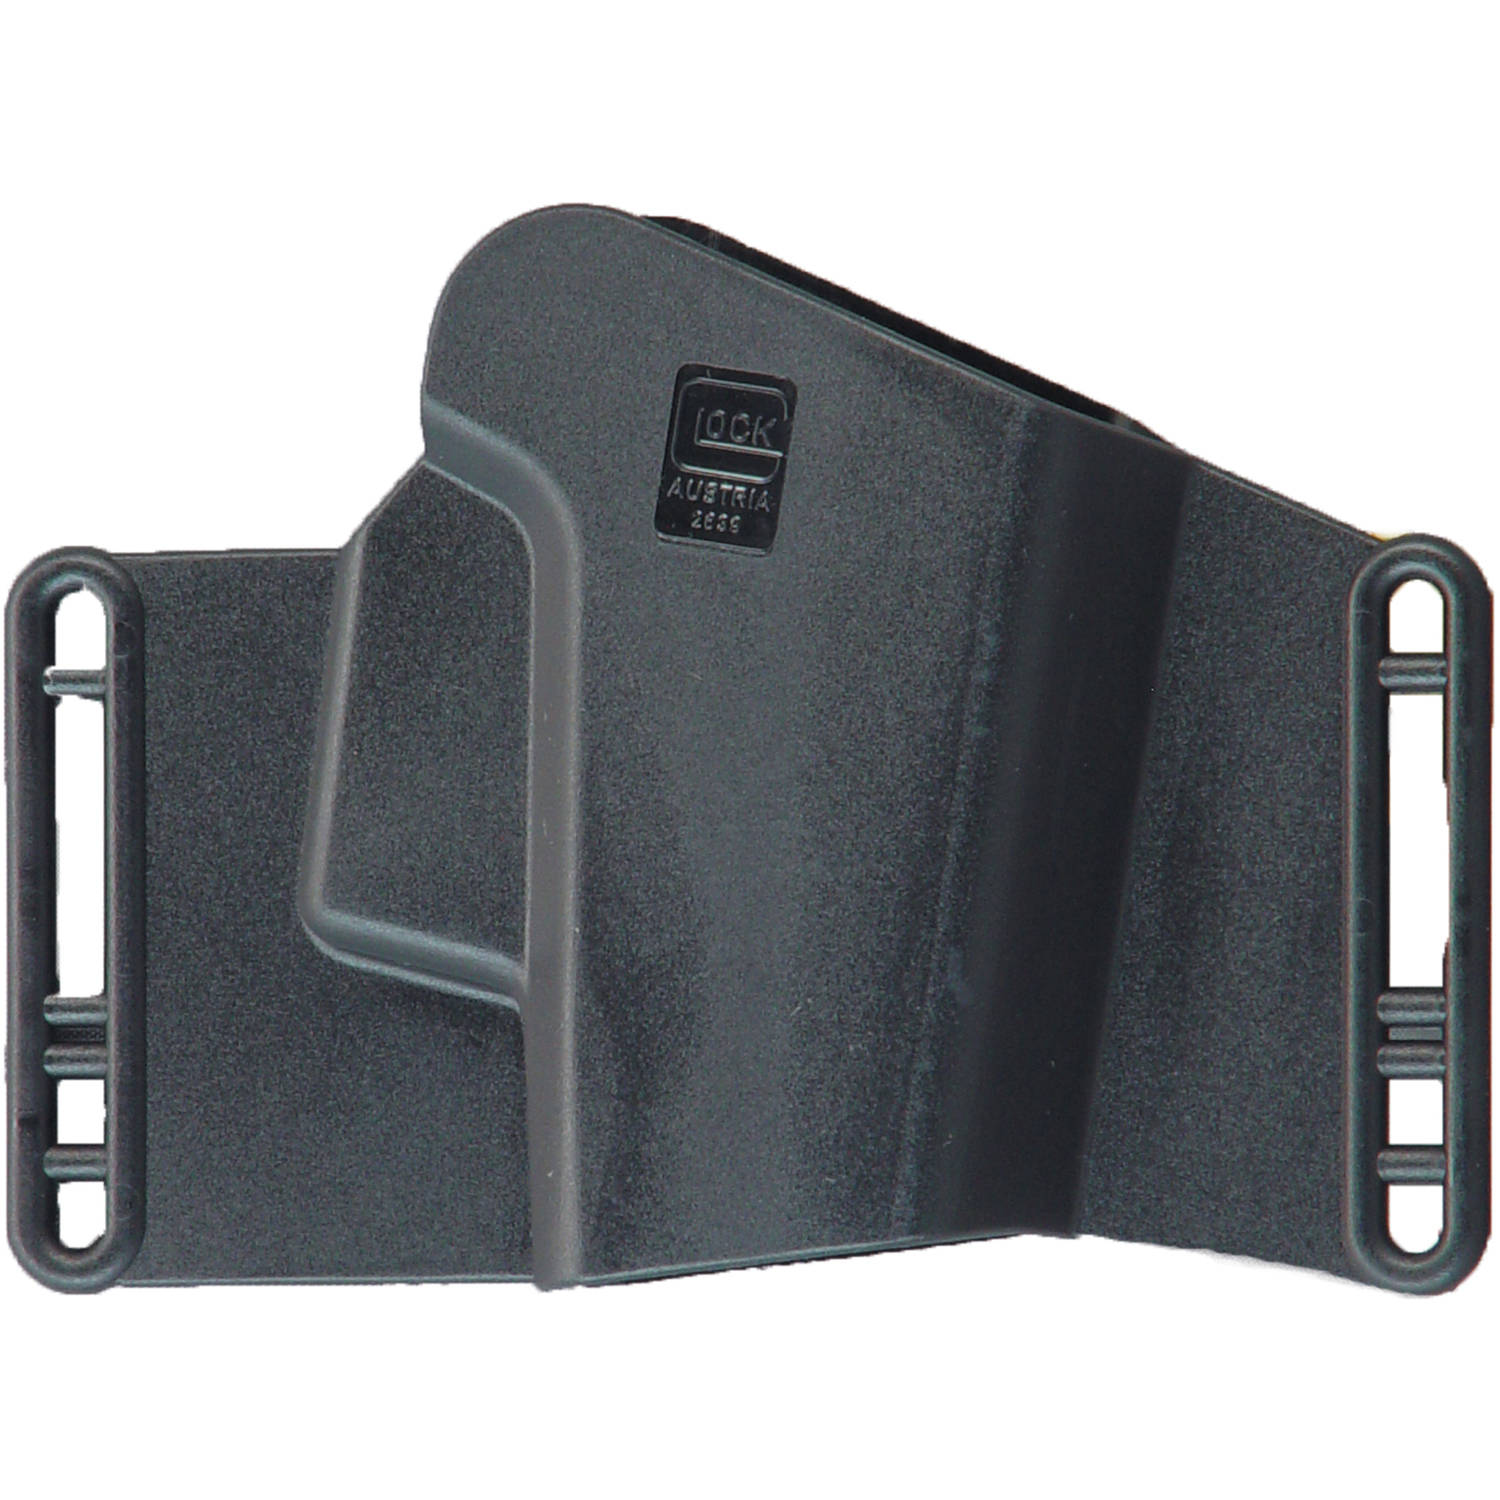 """Glock OEM Sport Combat Holster, Fits Glock 20, 21 with 4.5"""" Barrel, Right Hand, Black by Glock"""